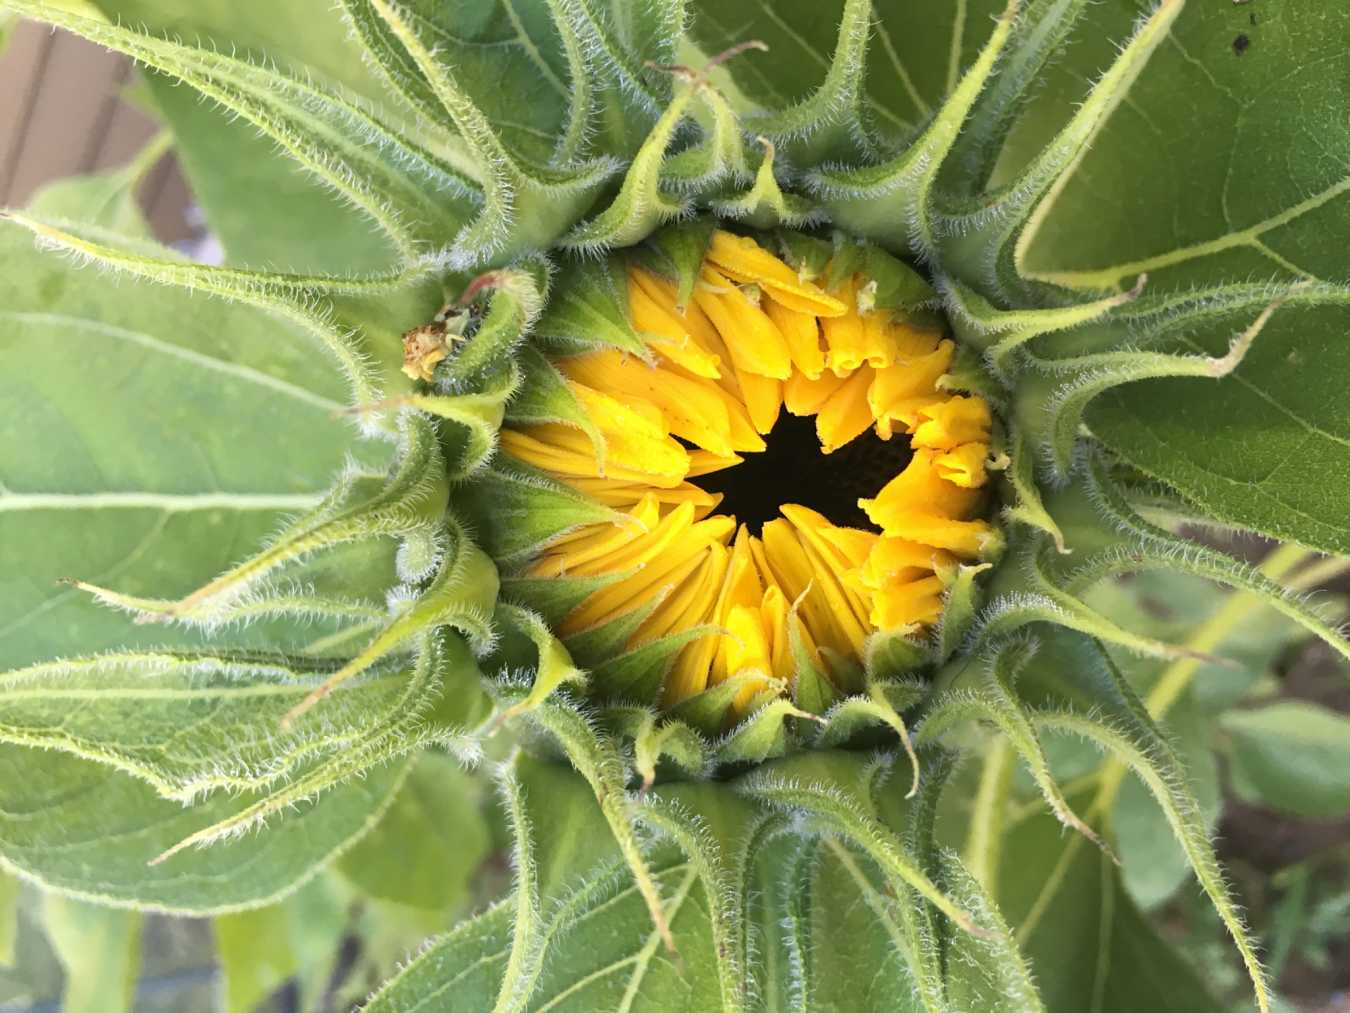 What I've Learned from Sunflowers